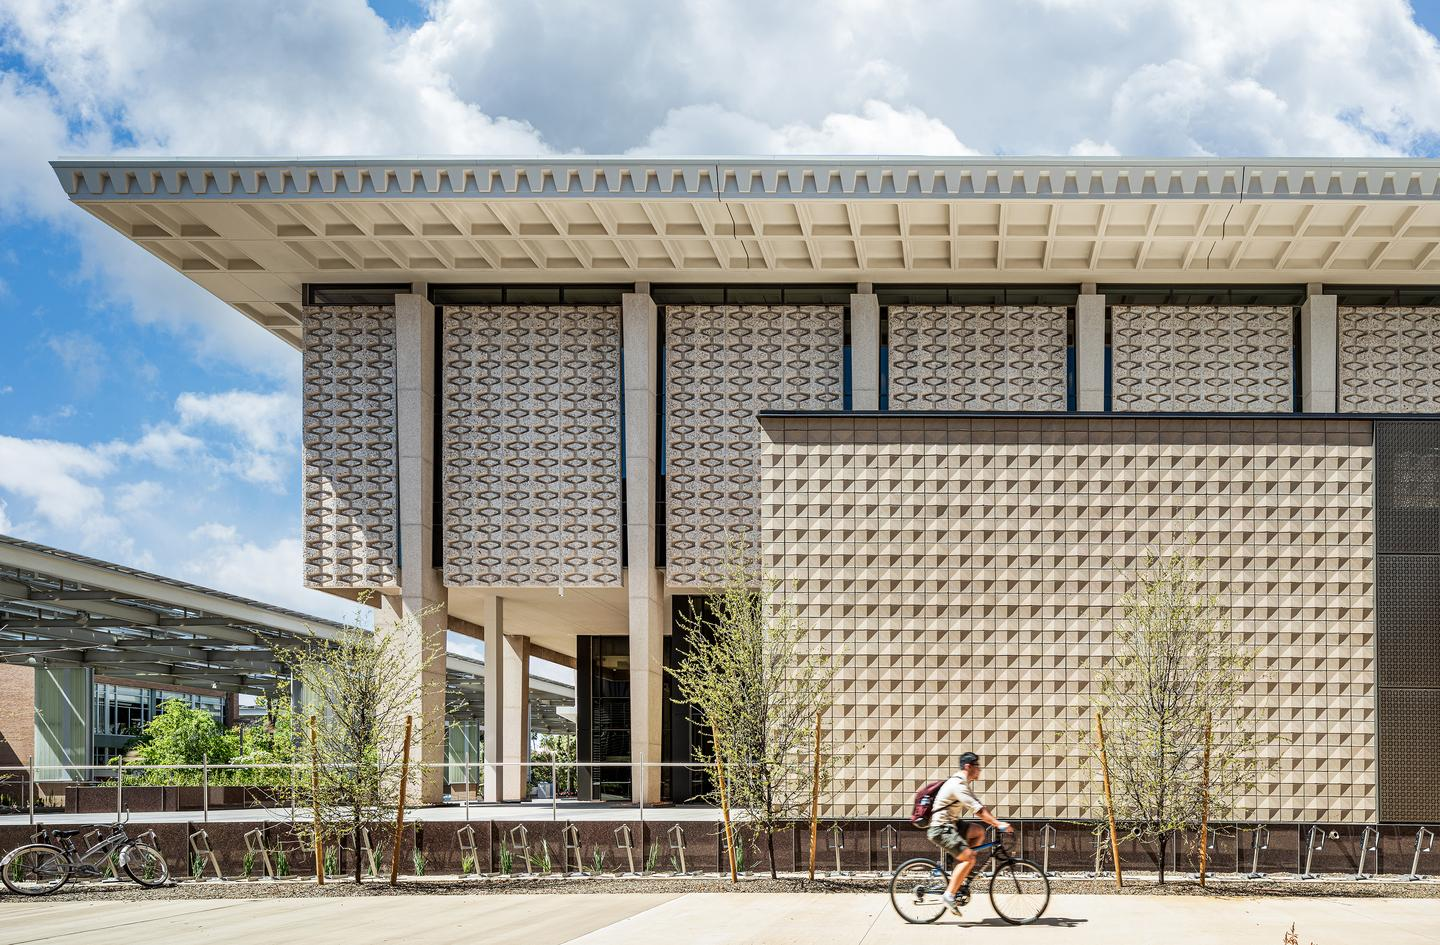 Arizona State University Hayden Library Reinvention was designed by Ayers Saint Gross and is located in Tempe, Arizona